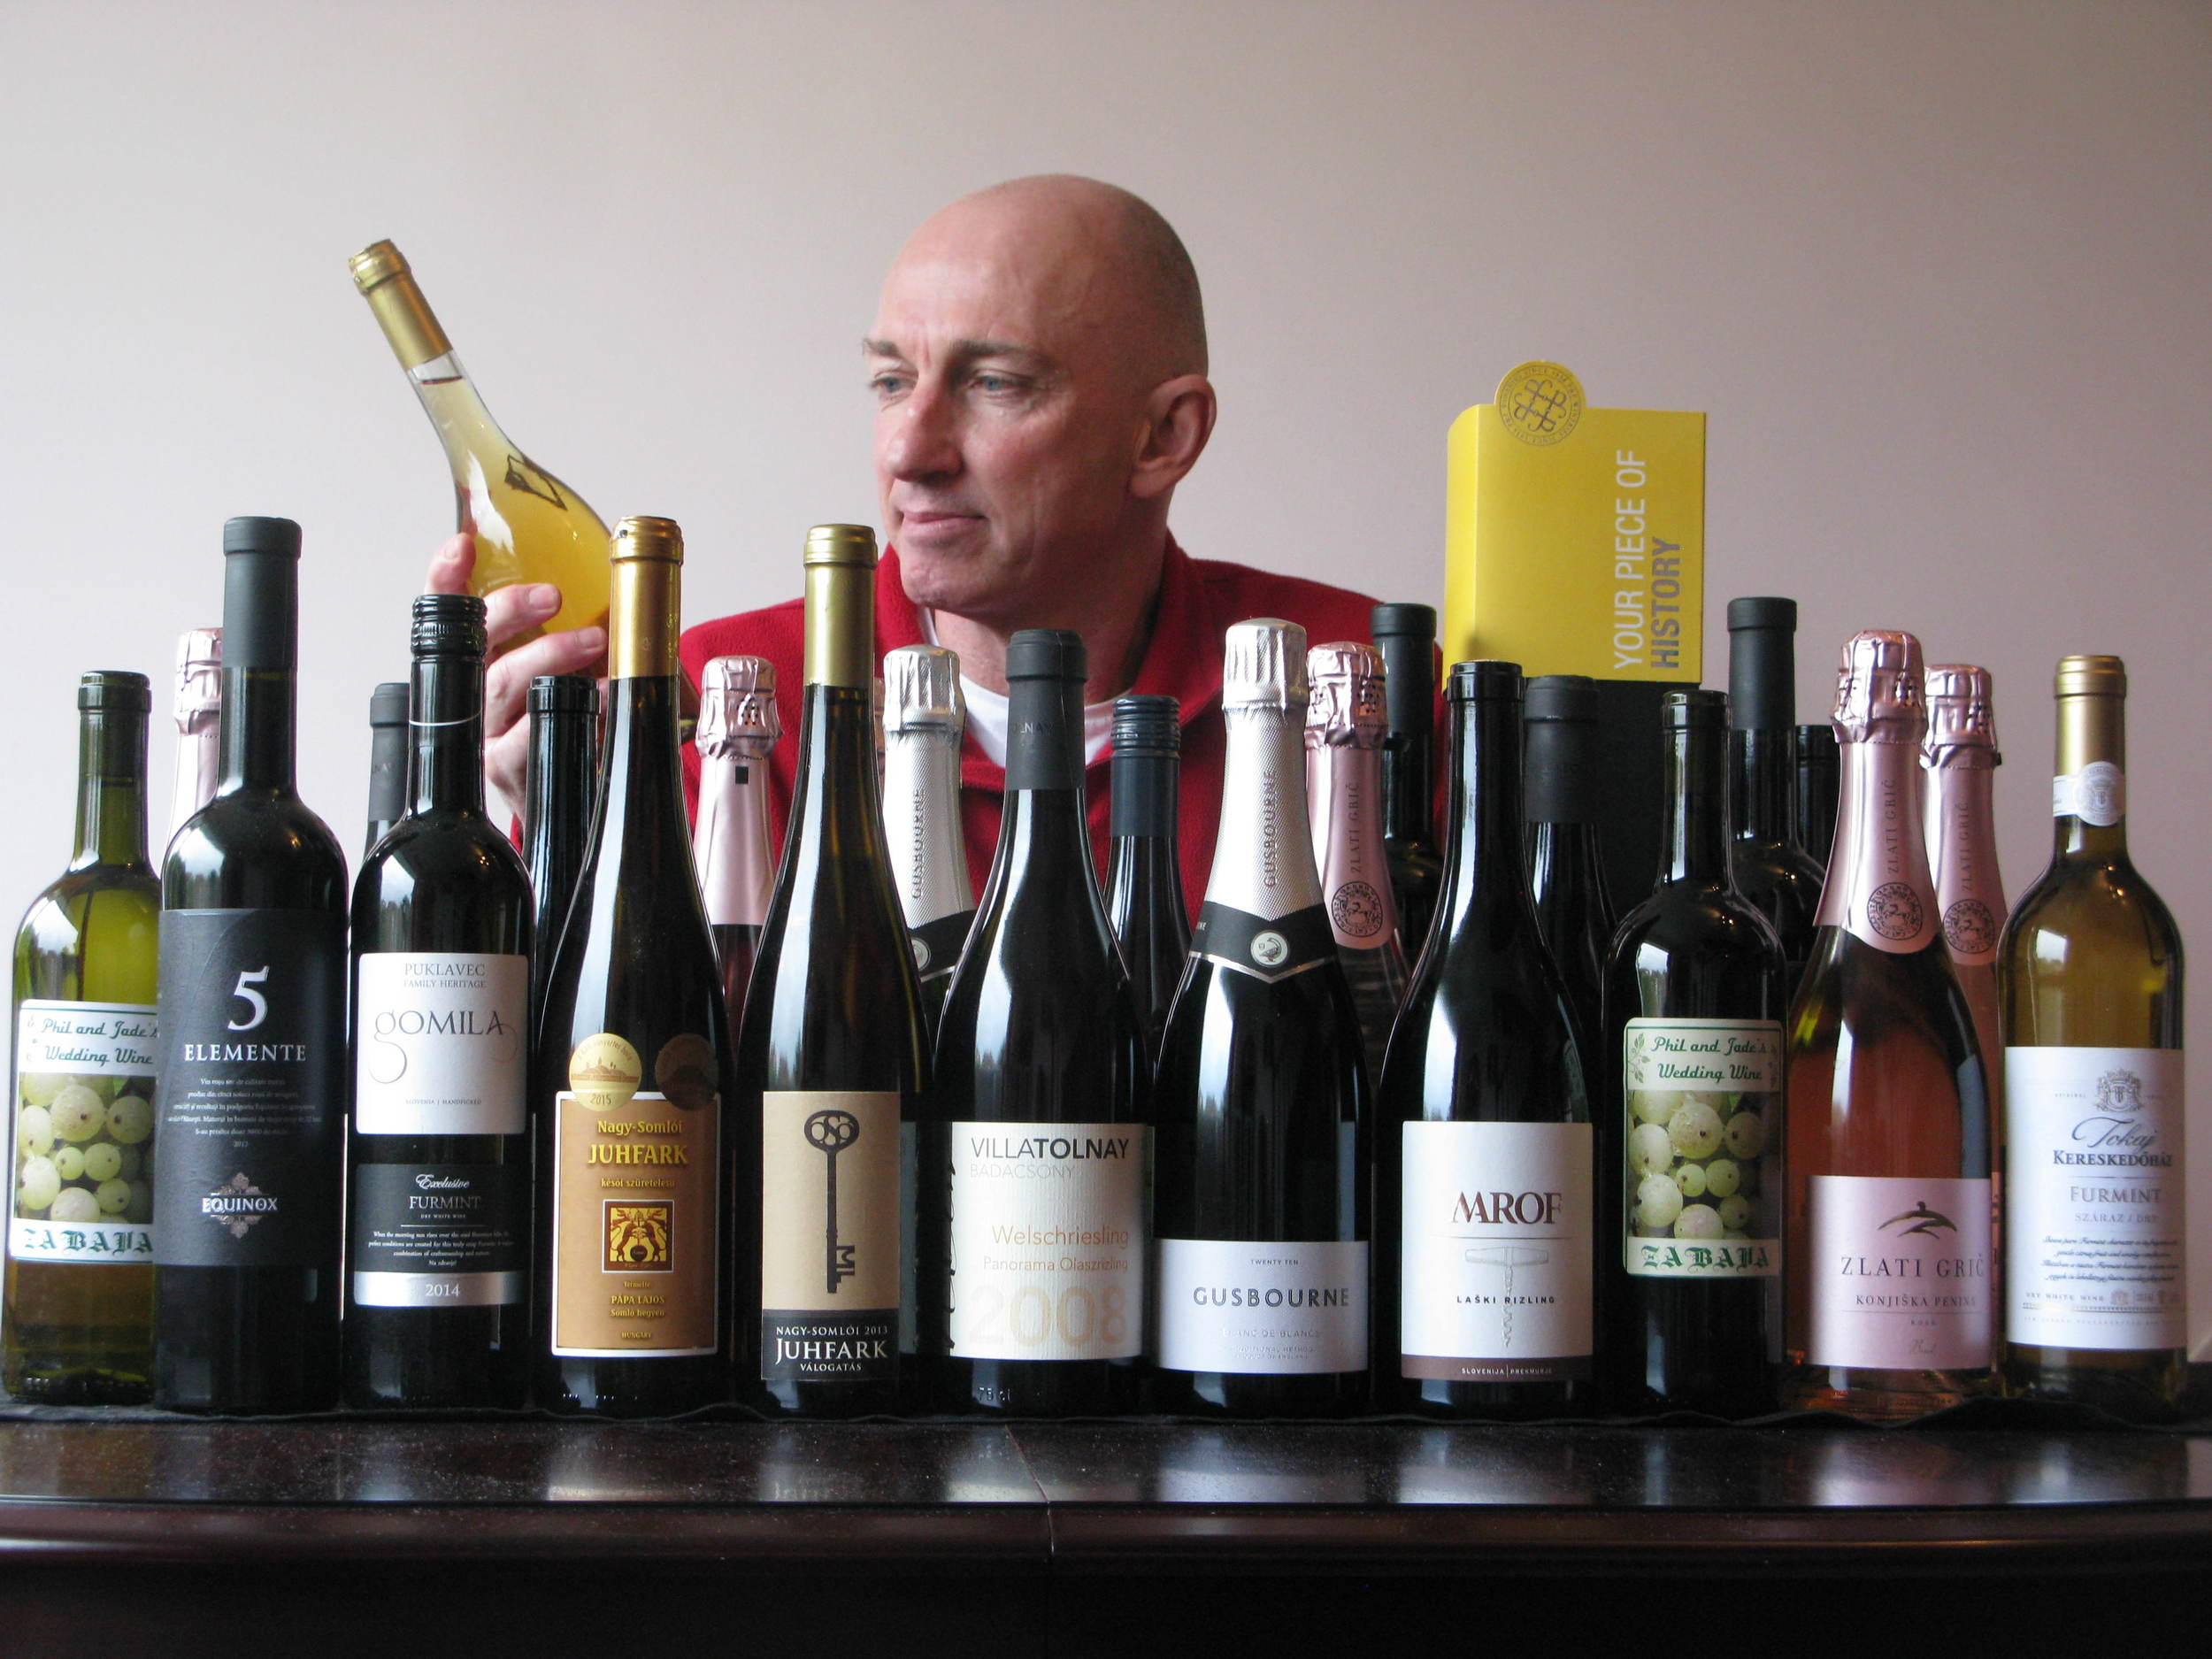 Chris examines the interesting line-up of wines